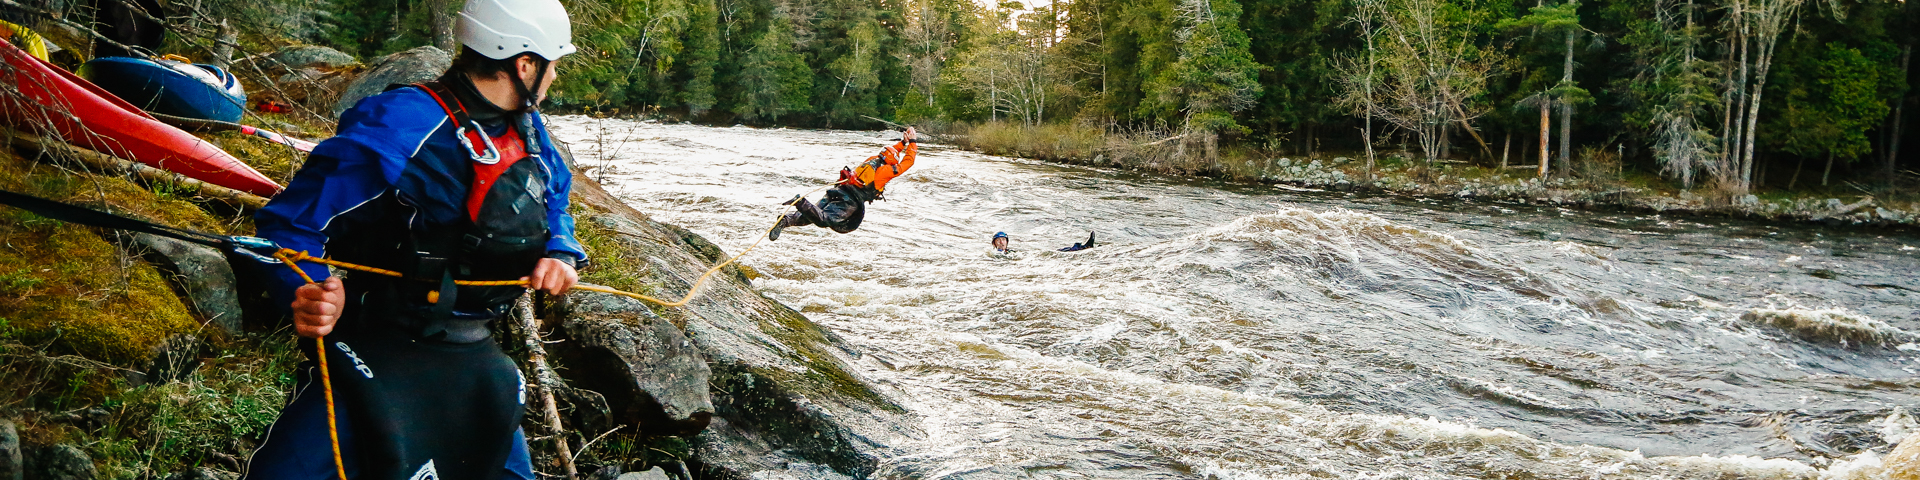 Whitewater Rescue Technician Levels I, II, & III - 4 day course by Boreal River Rescue - Image 60